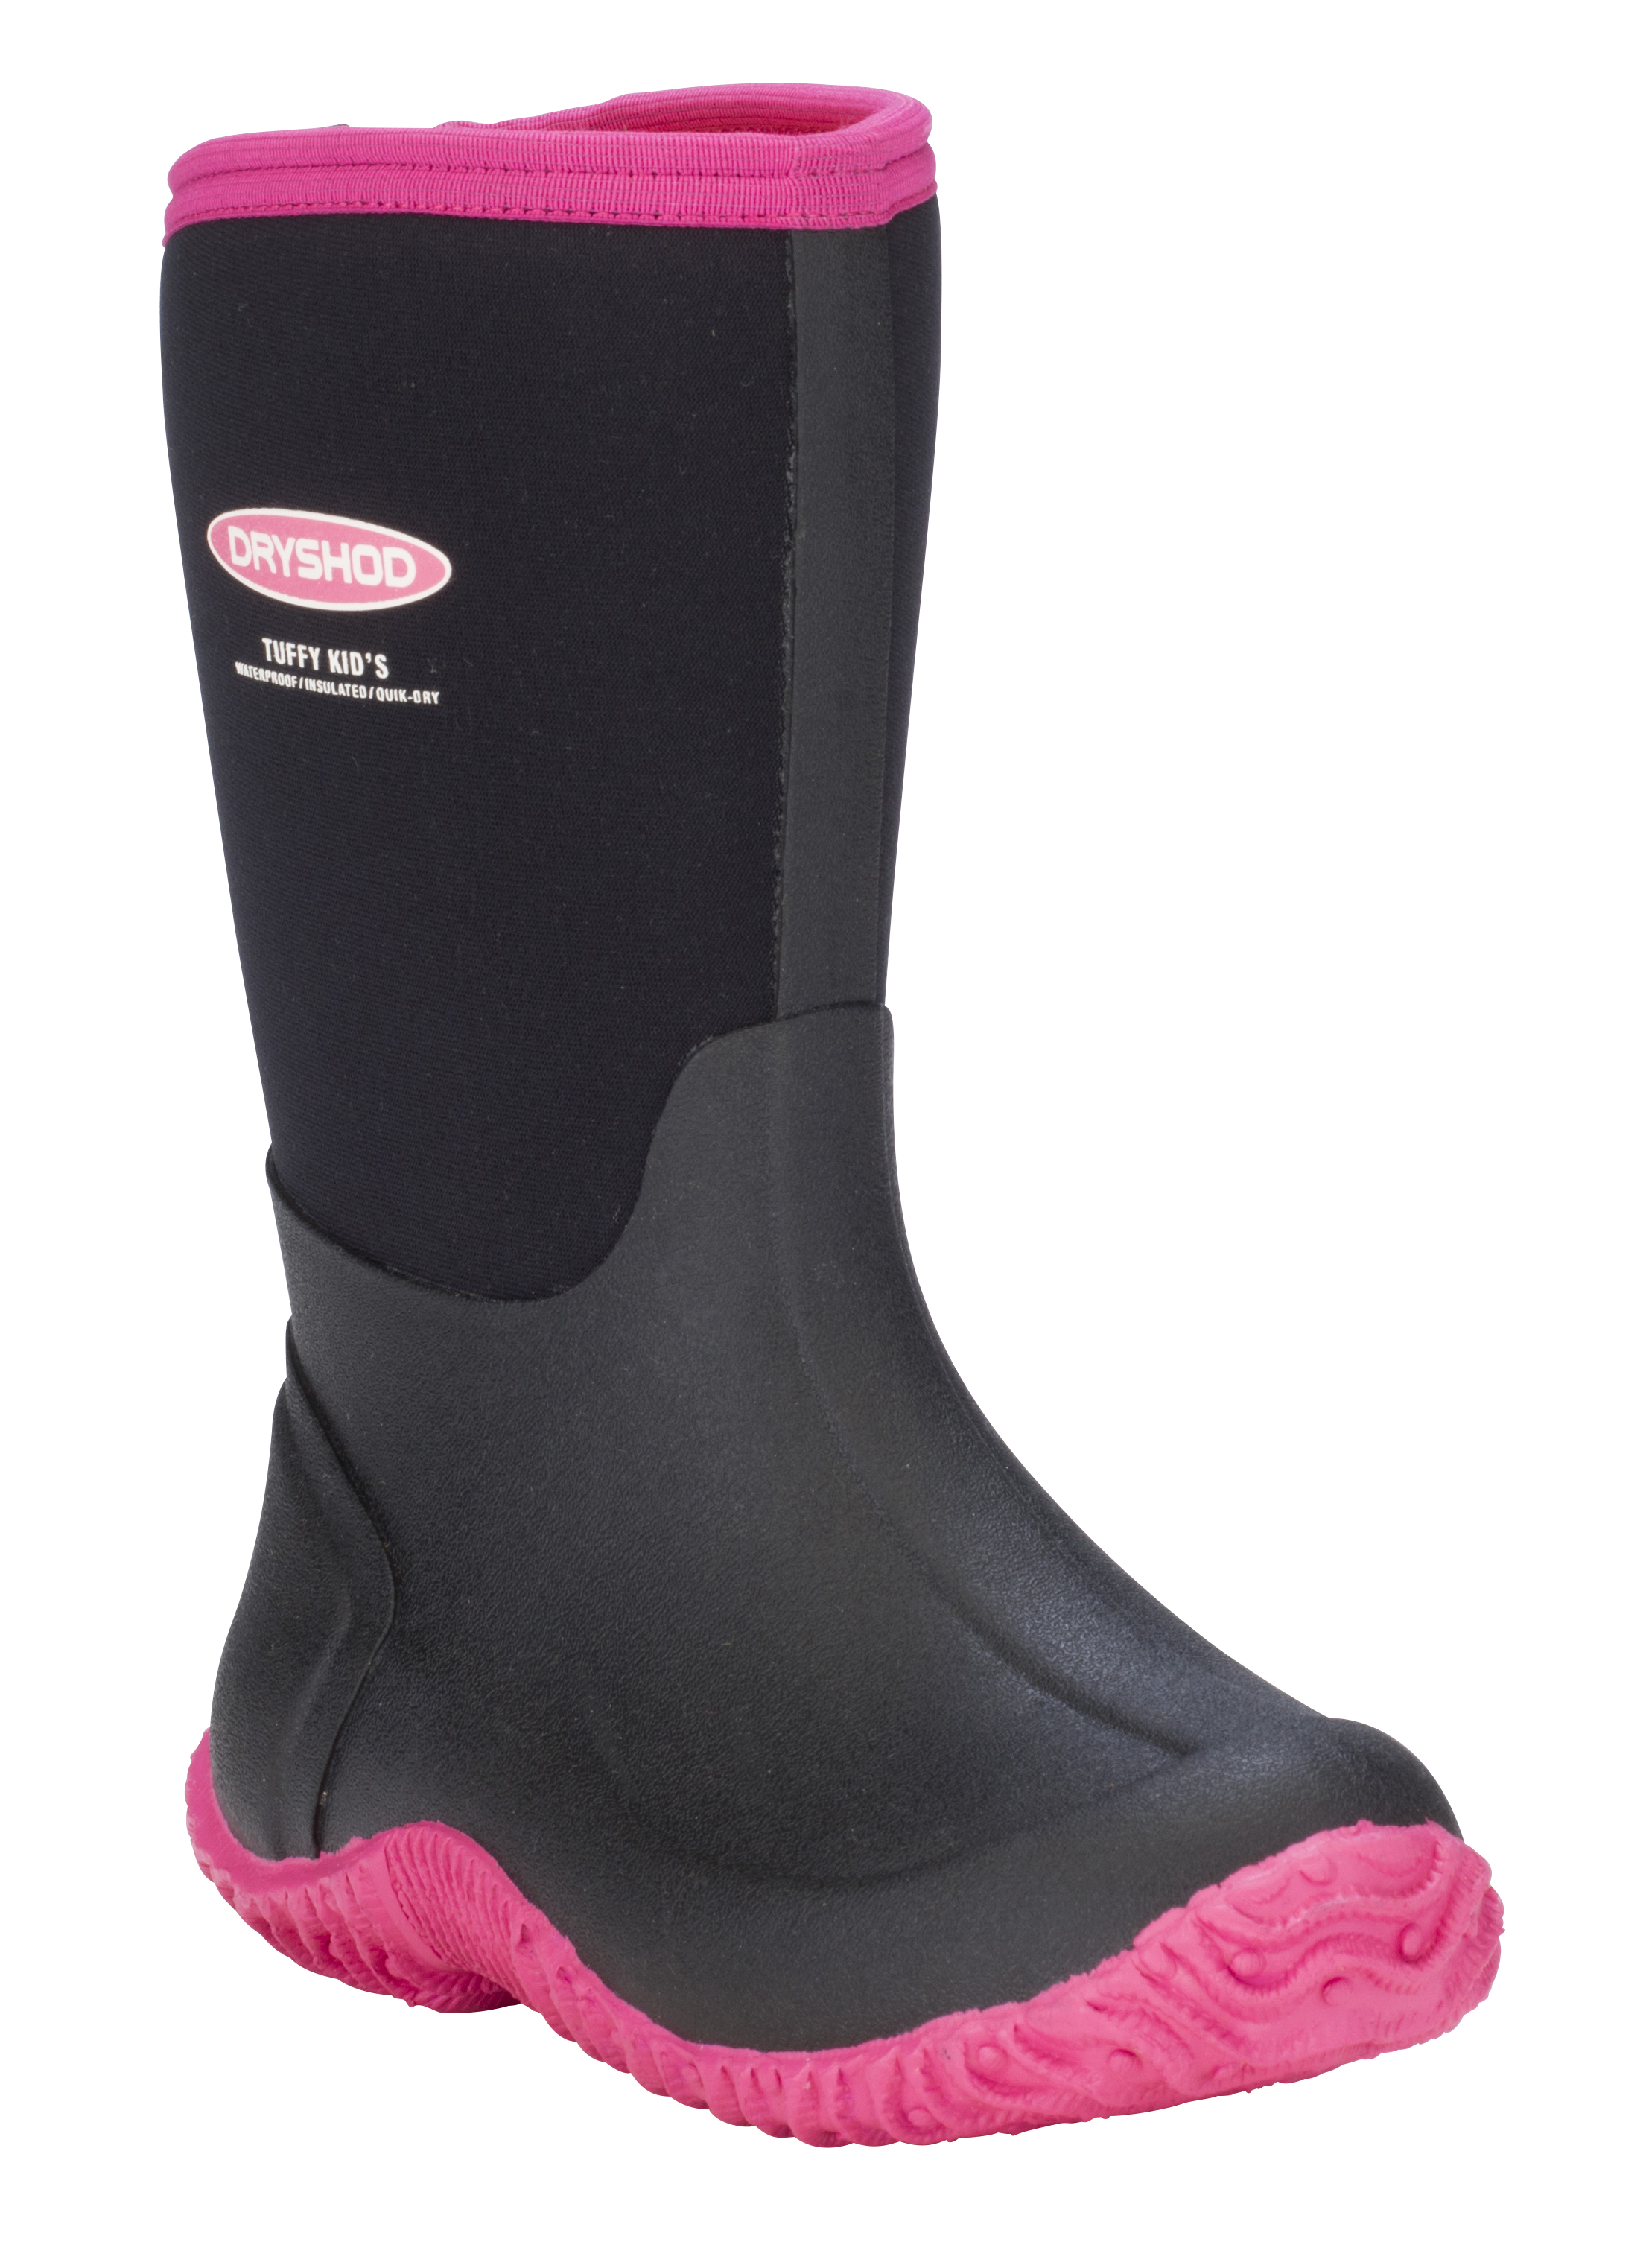 Dryshod Kids' Tuffy All Season Sport Boots - Mid/Hi Cut - Size C10, Black/Pink